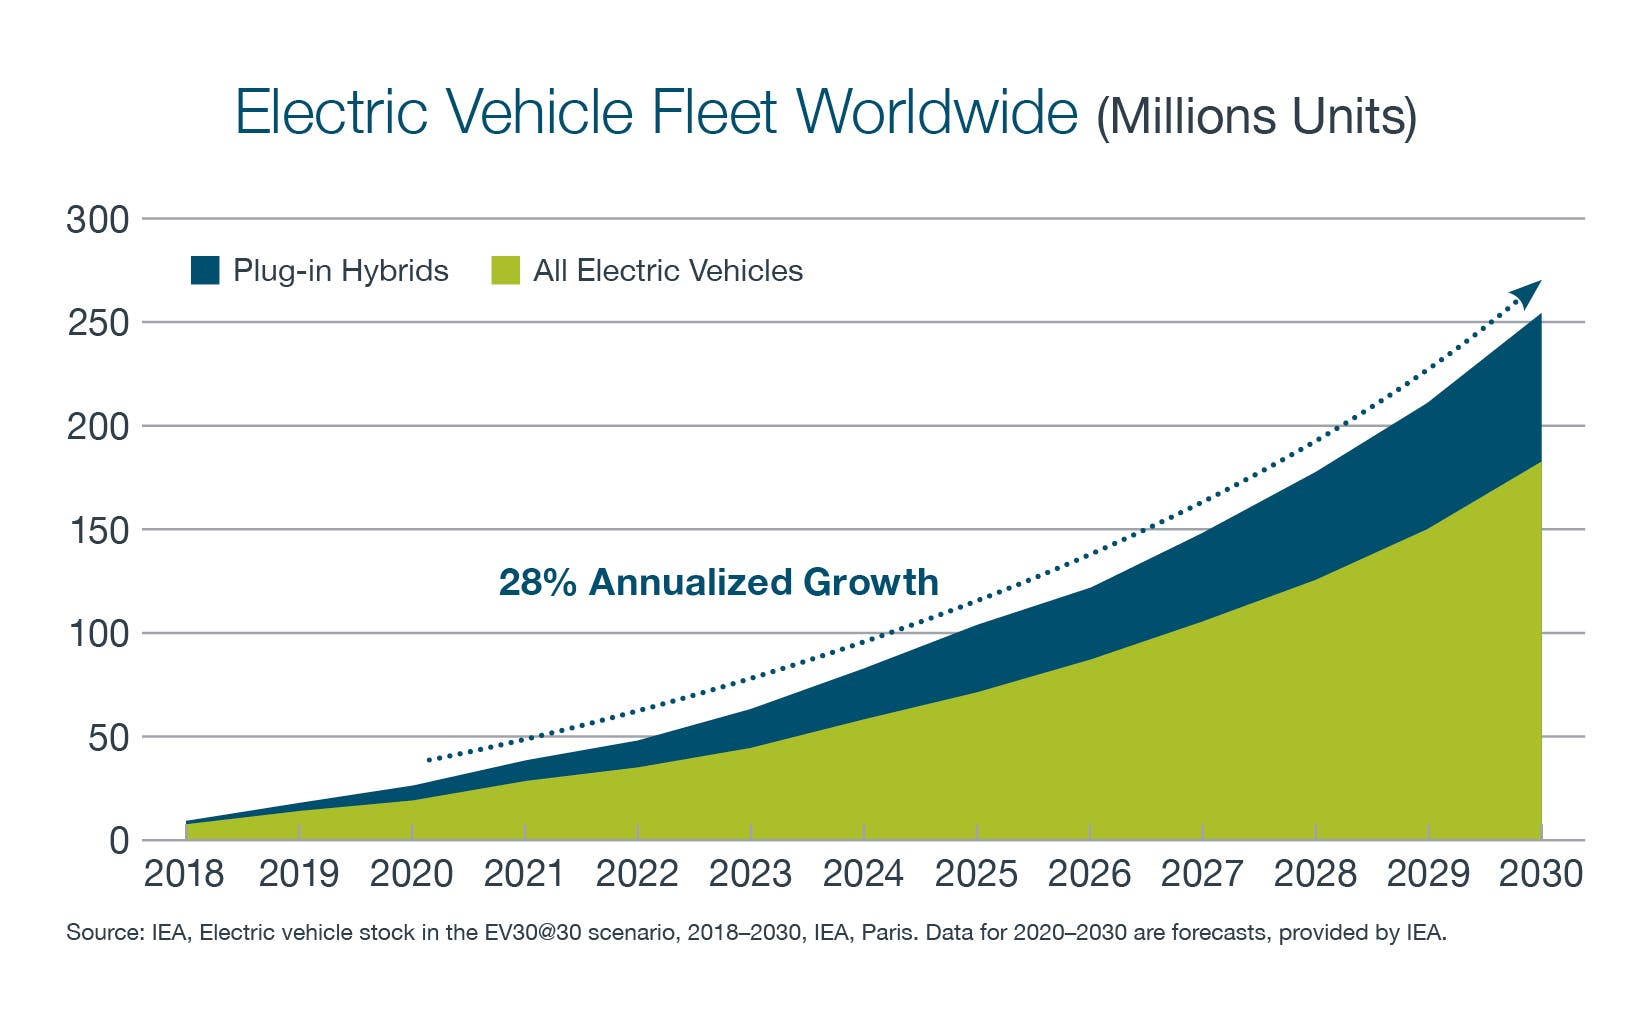 Graph showing electric vehicle fleet worldwide. Blue color represents plug-in hybrids and green color represents all electric vehicles. The graph predicts and annualized growth of 28% and to reach over 250 Million electric vehicles by the year 2030